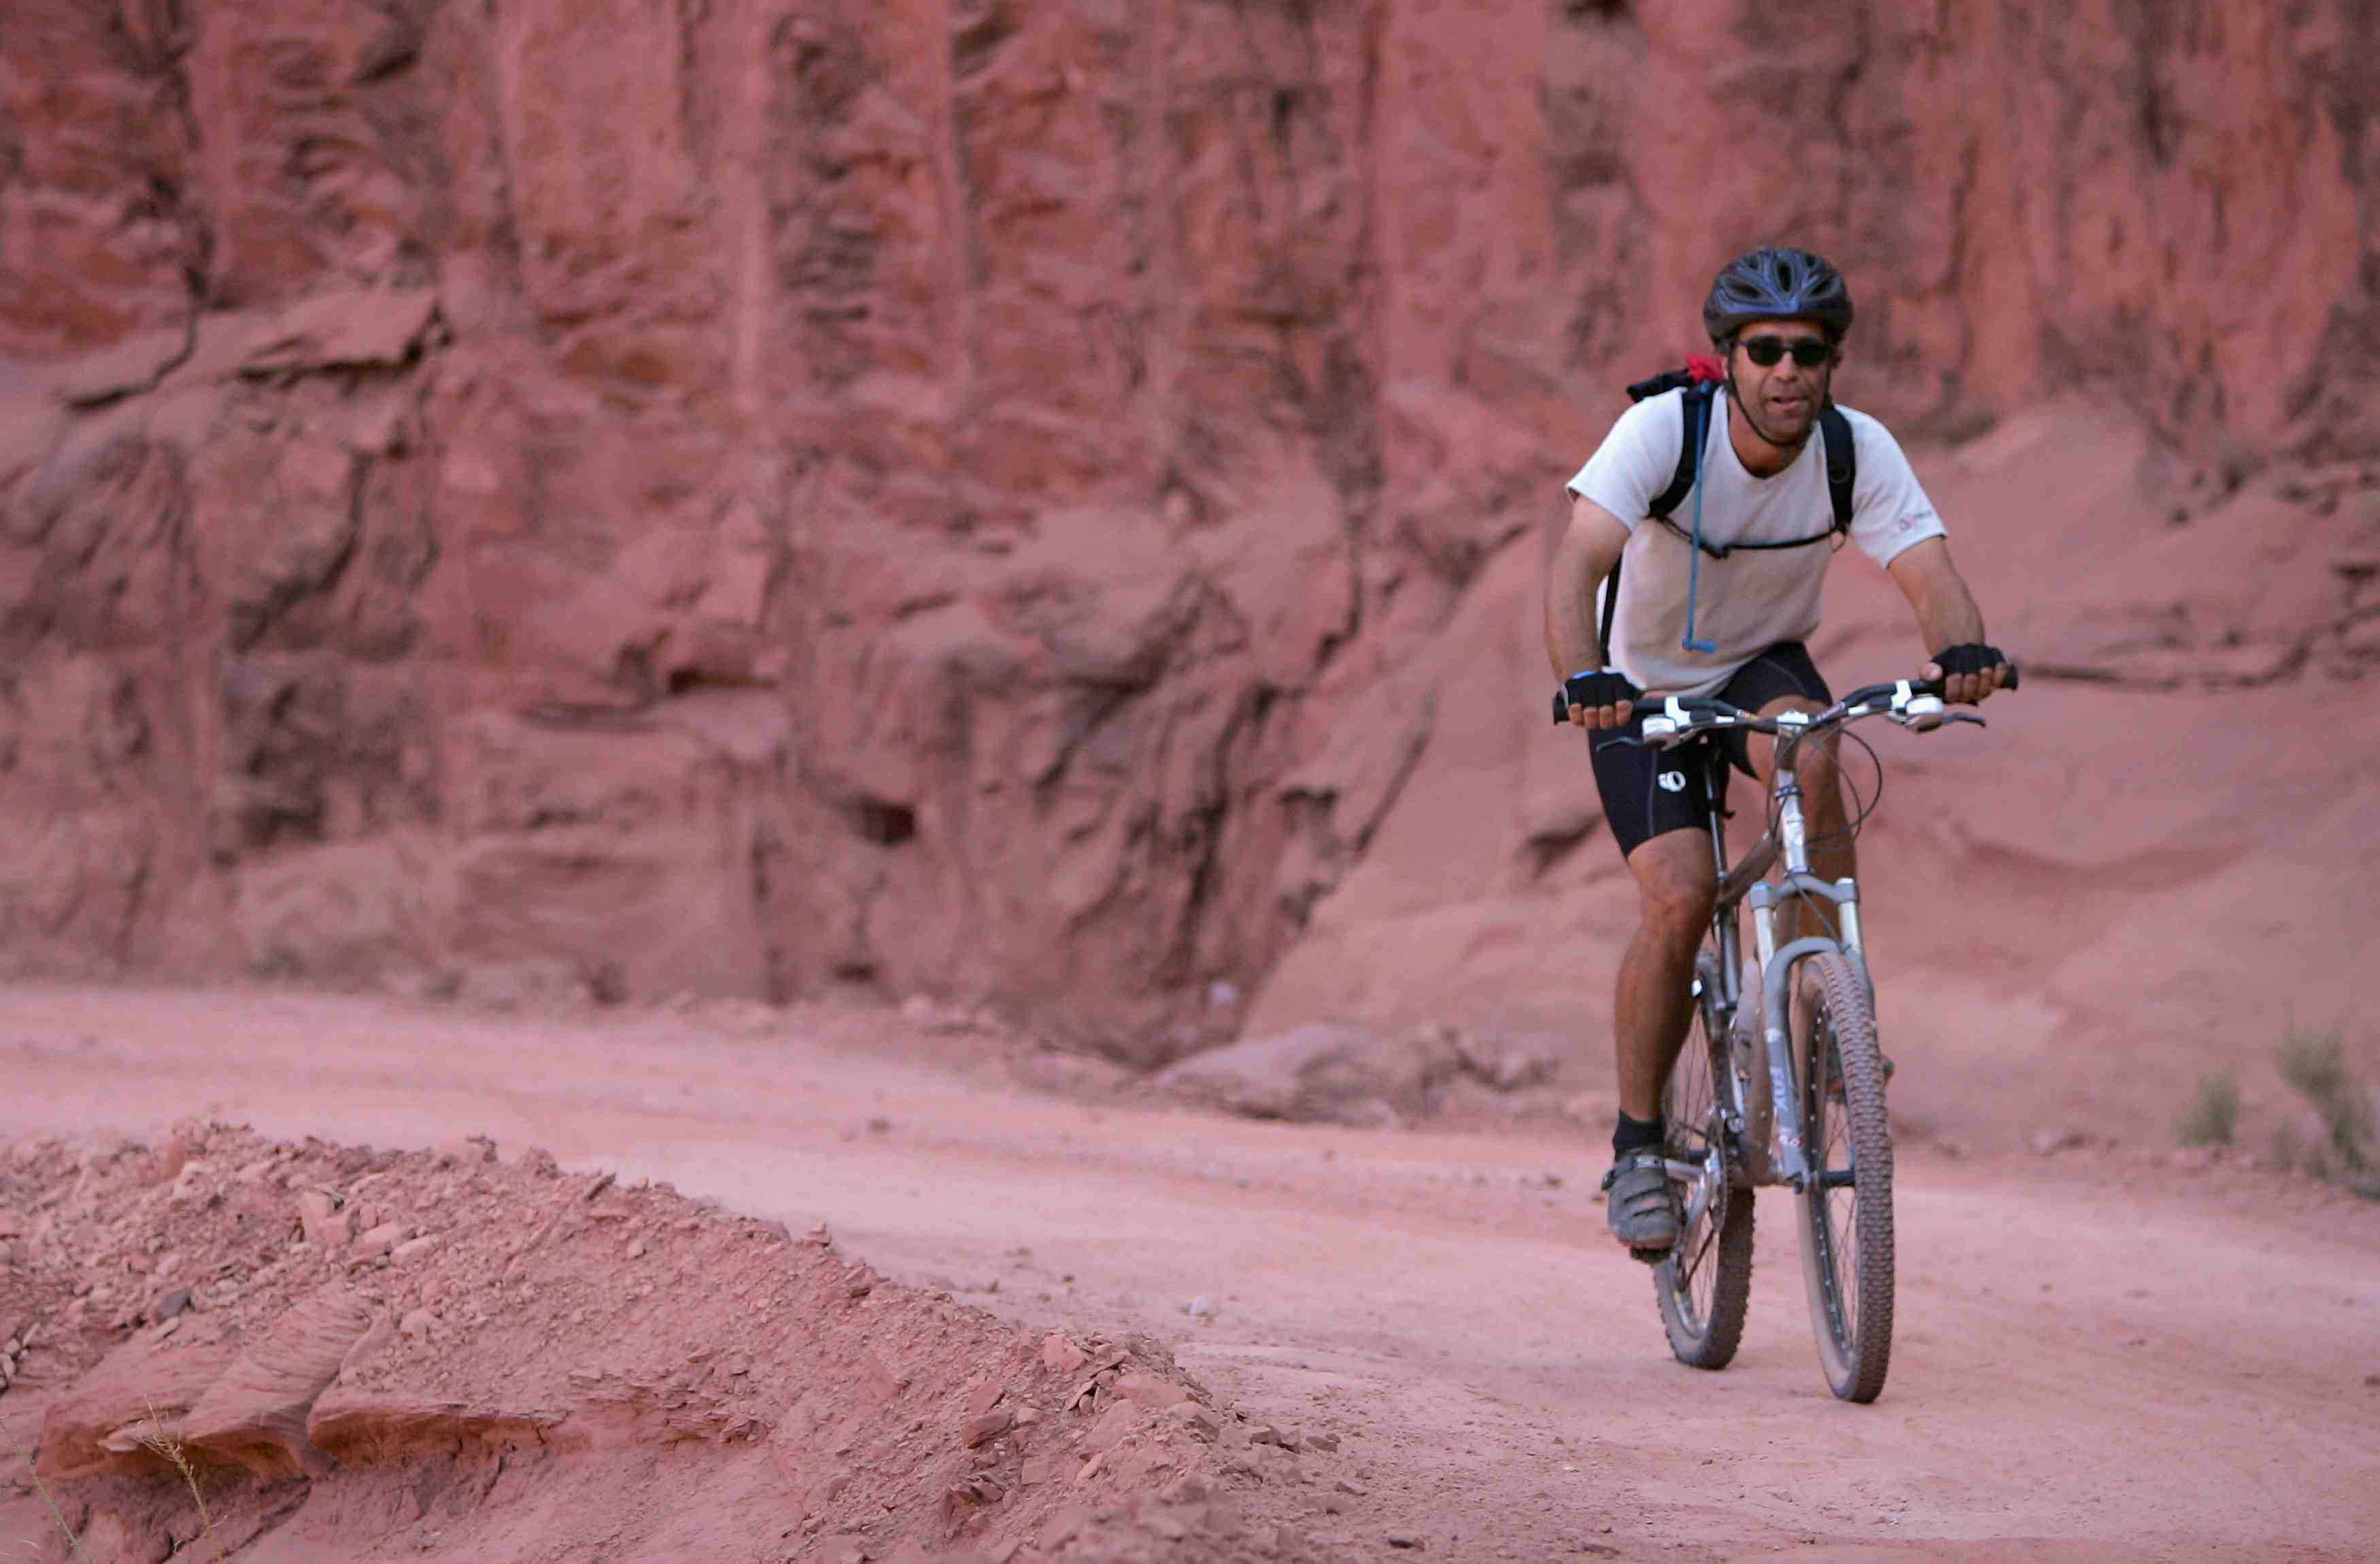 Butch Boucher of Steamboat Springs climbs away from the Green River to Horsethief Point while mountain biking the White Rim Trail on October 28, 2007 in Canyonlands National Park, Utah.